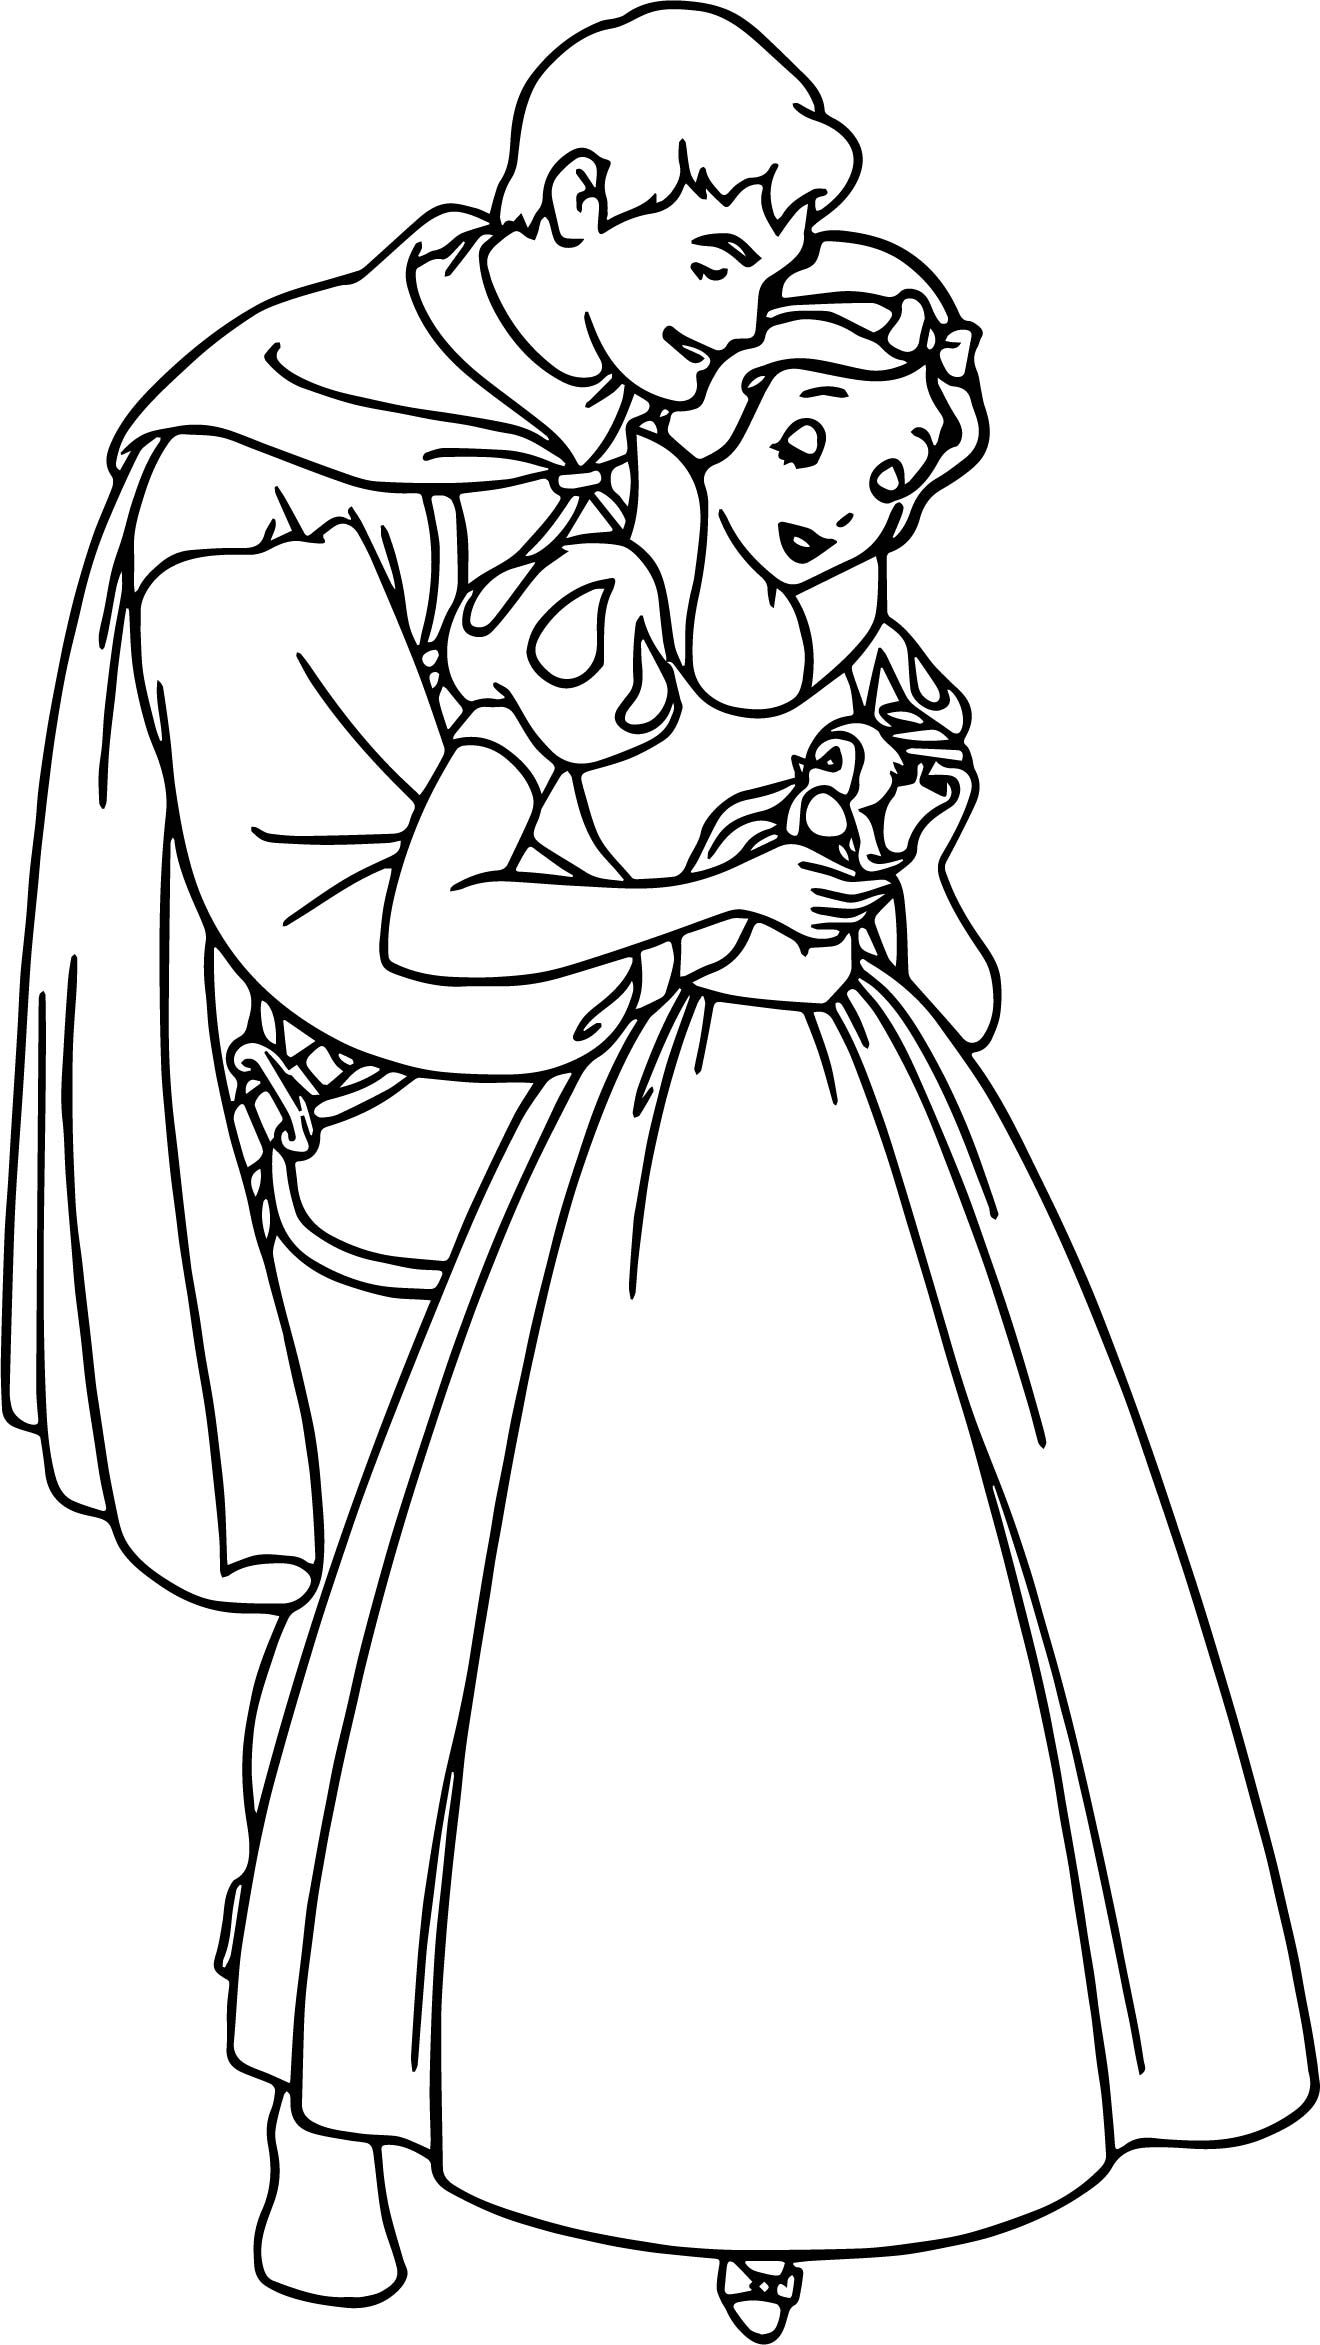 coloring snow white birds cool snow white and the prince bird coloring page snow birds coloring white snow